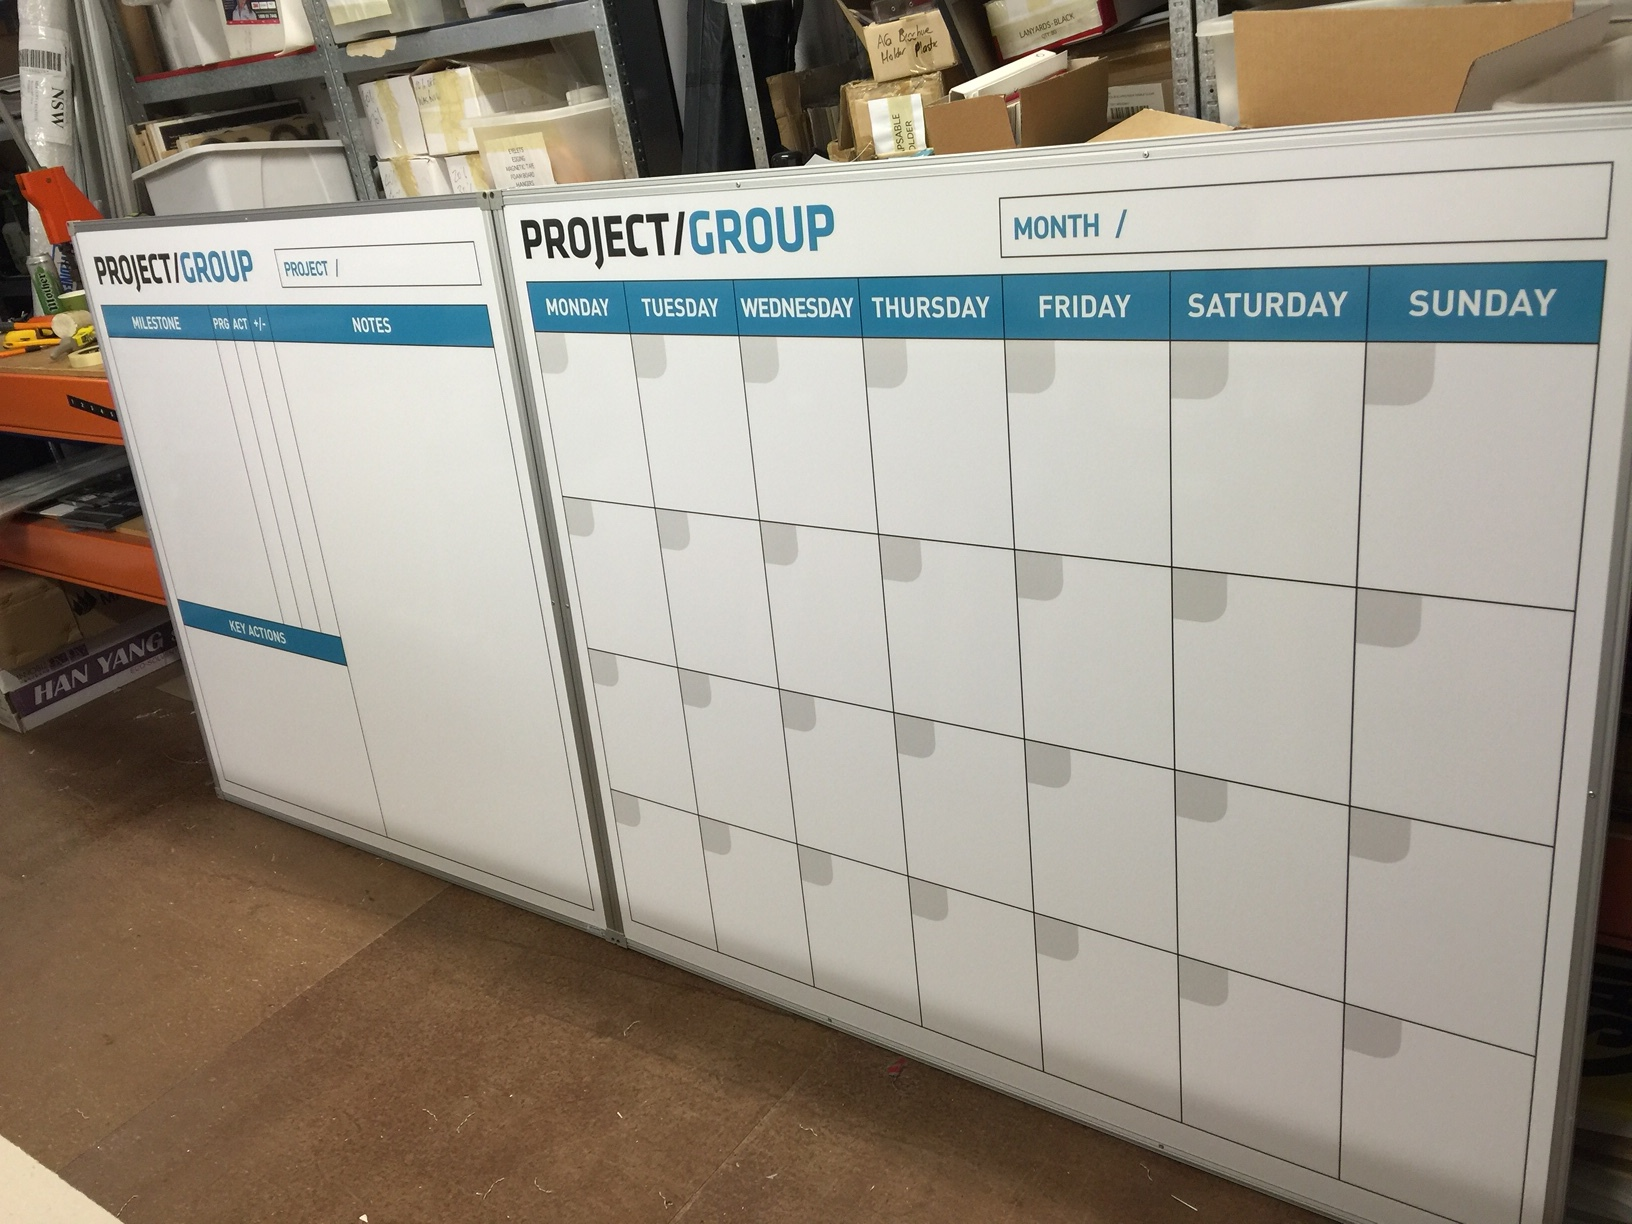 Building Project Planner - Site Boards